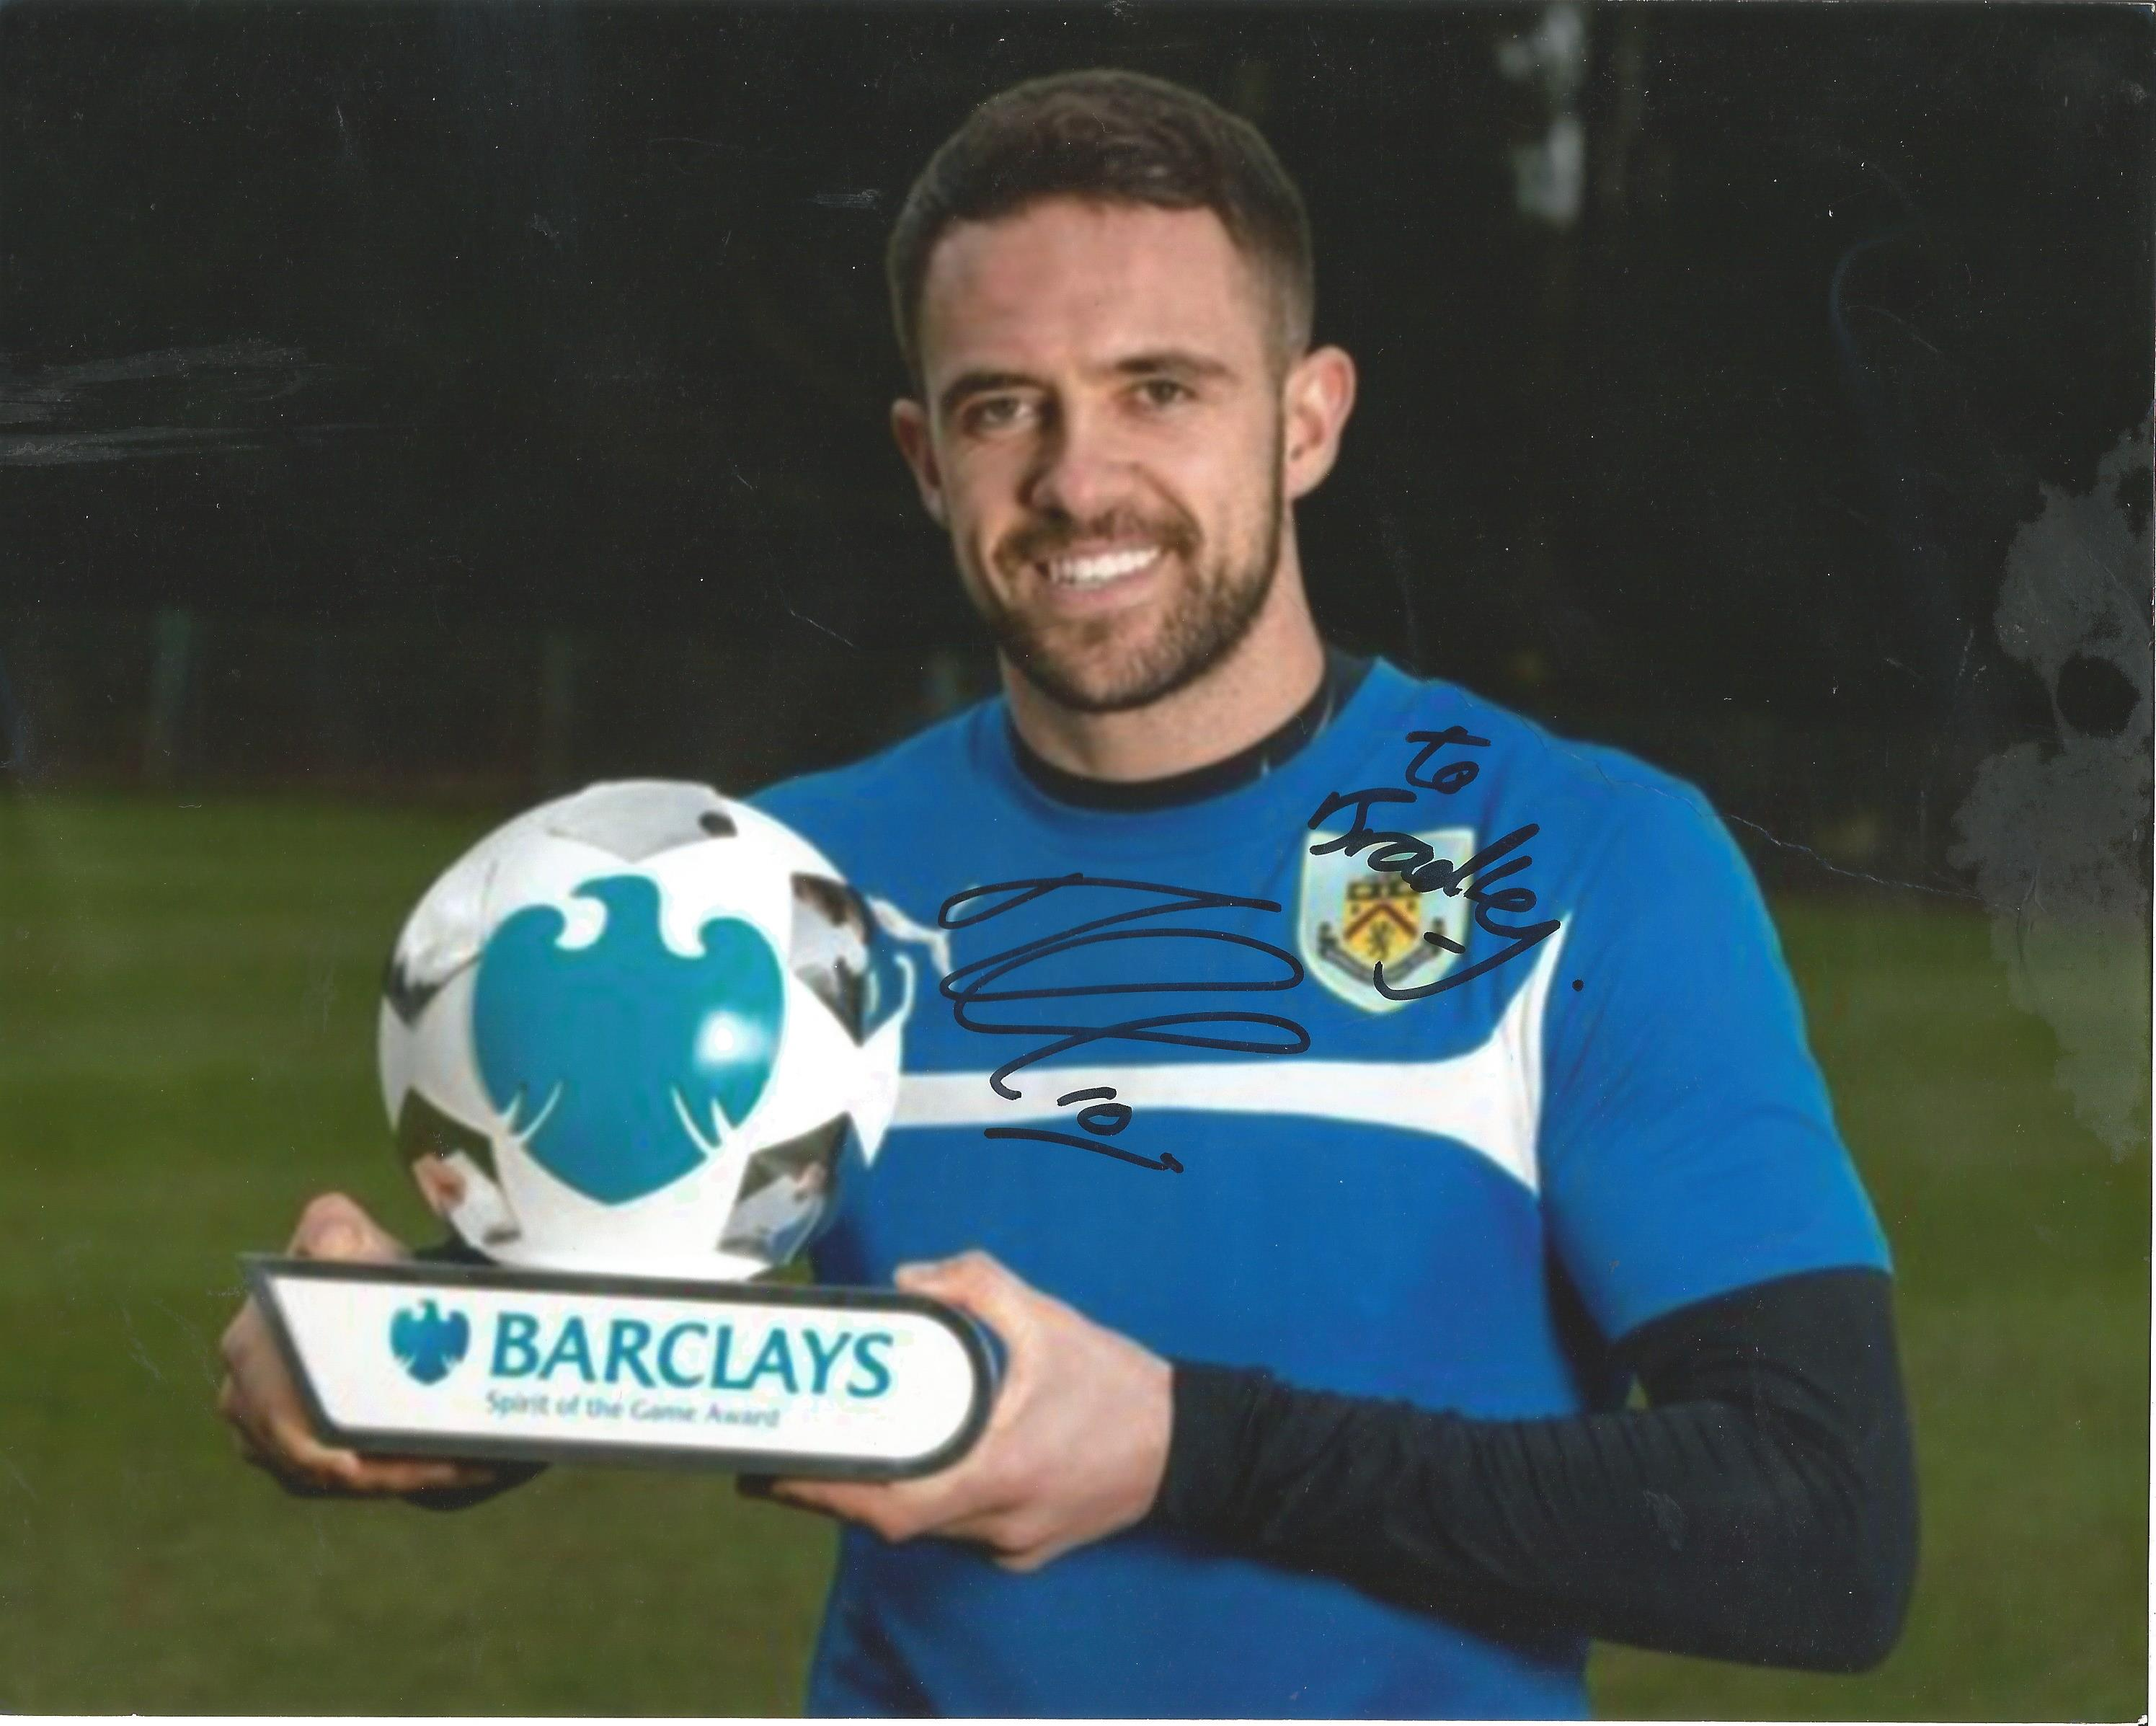 Football Danny Ings signed 10x8 colour photo pictured during his time with Burnley. Daniel William